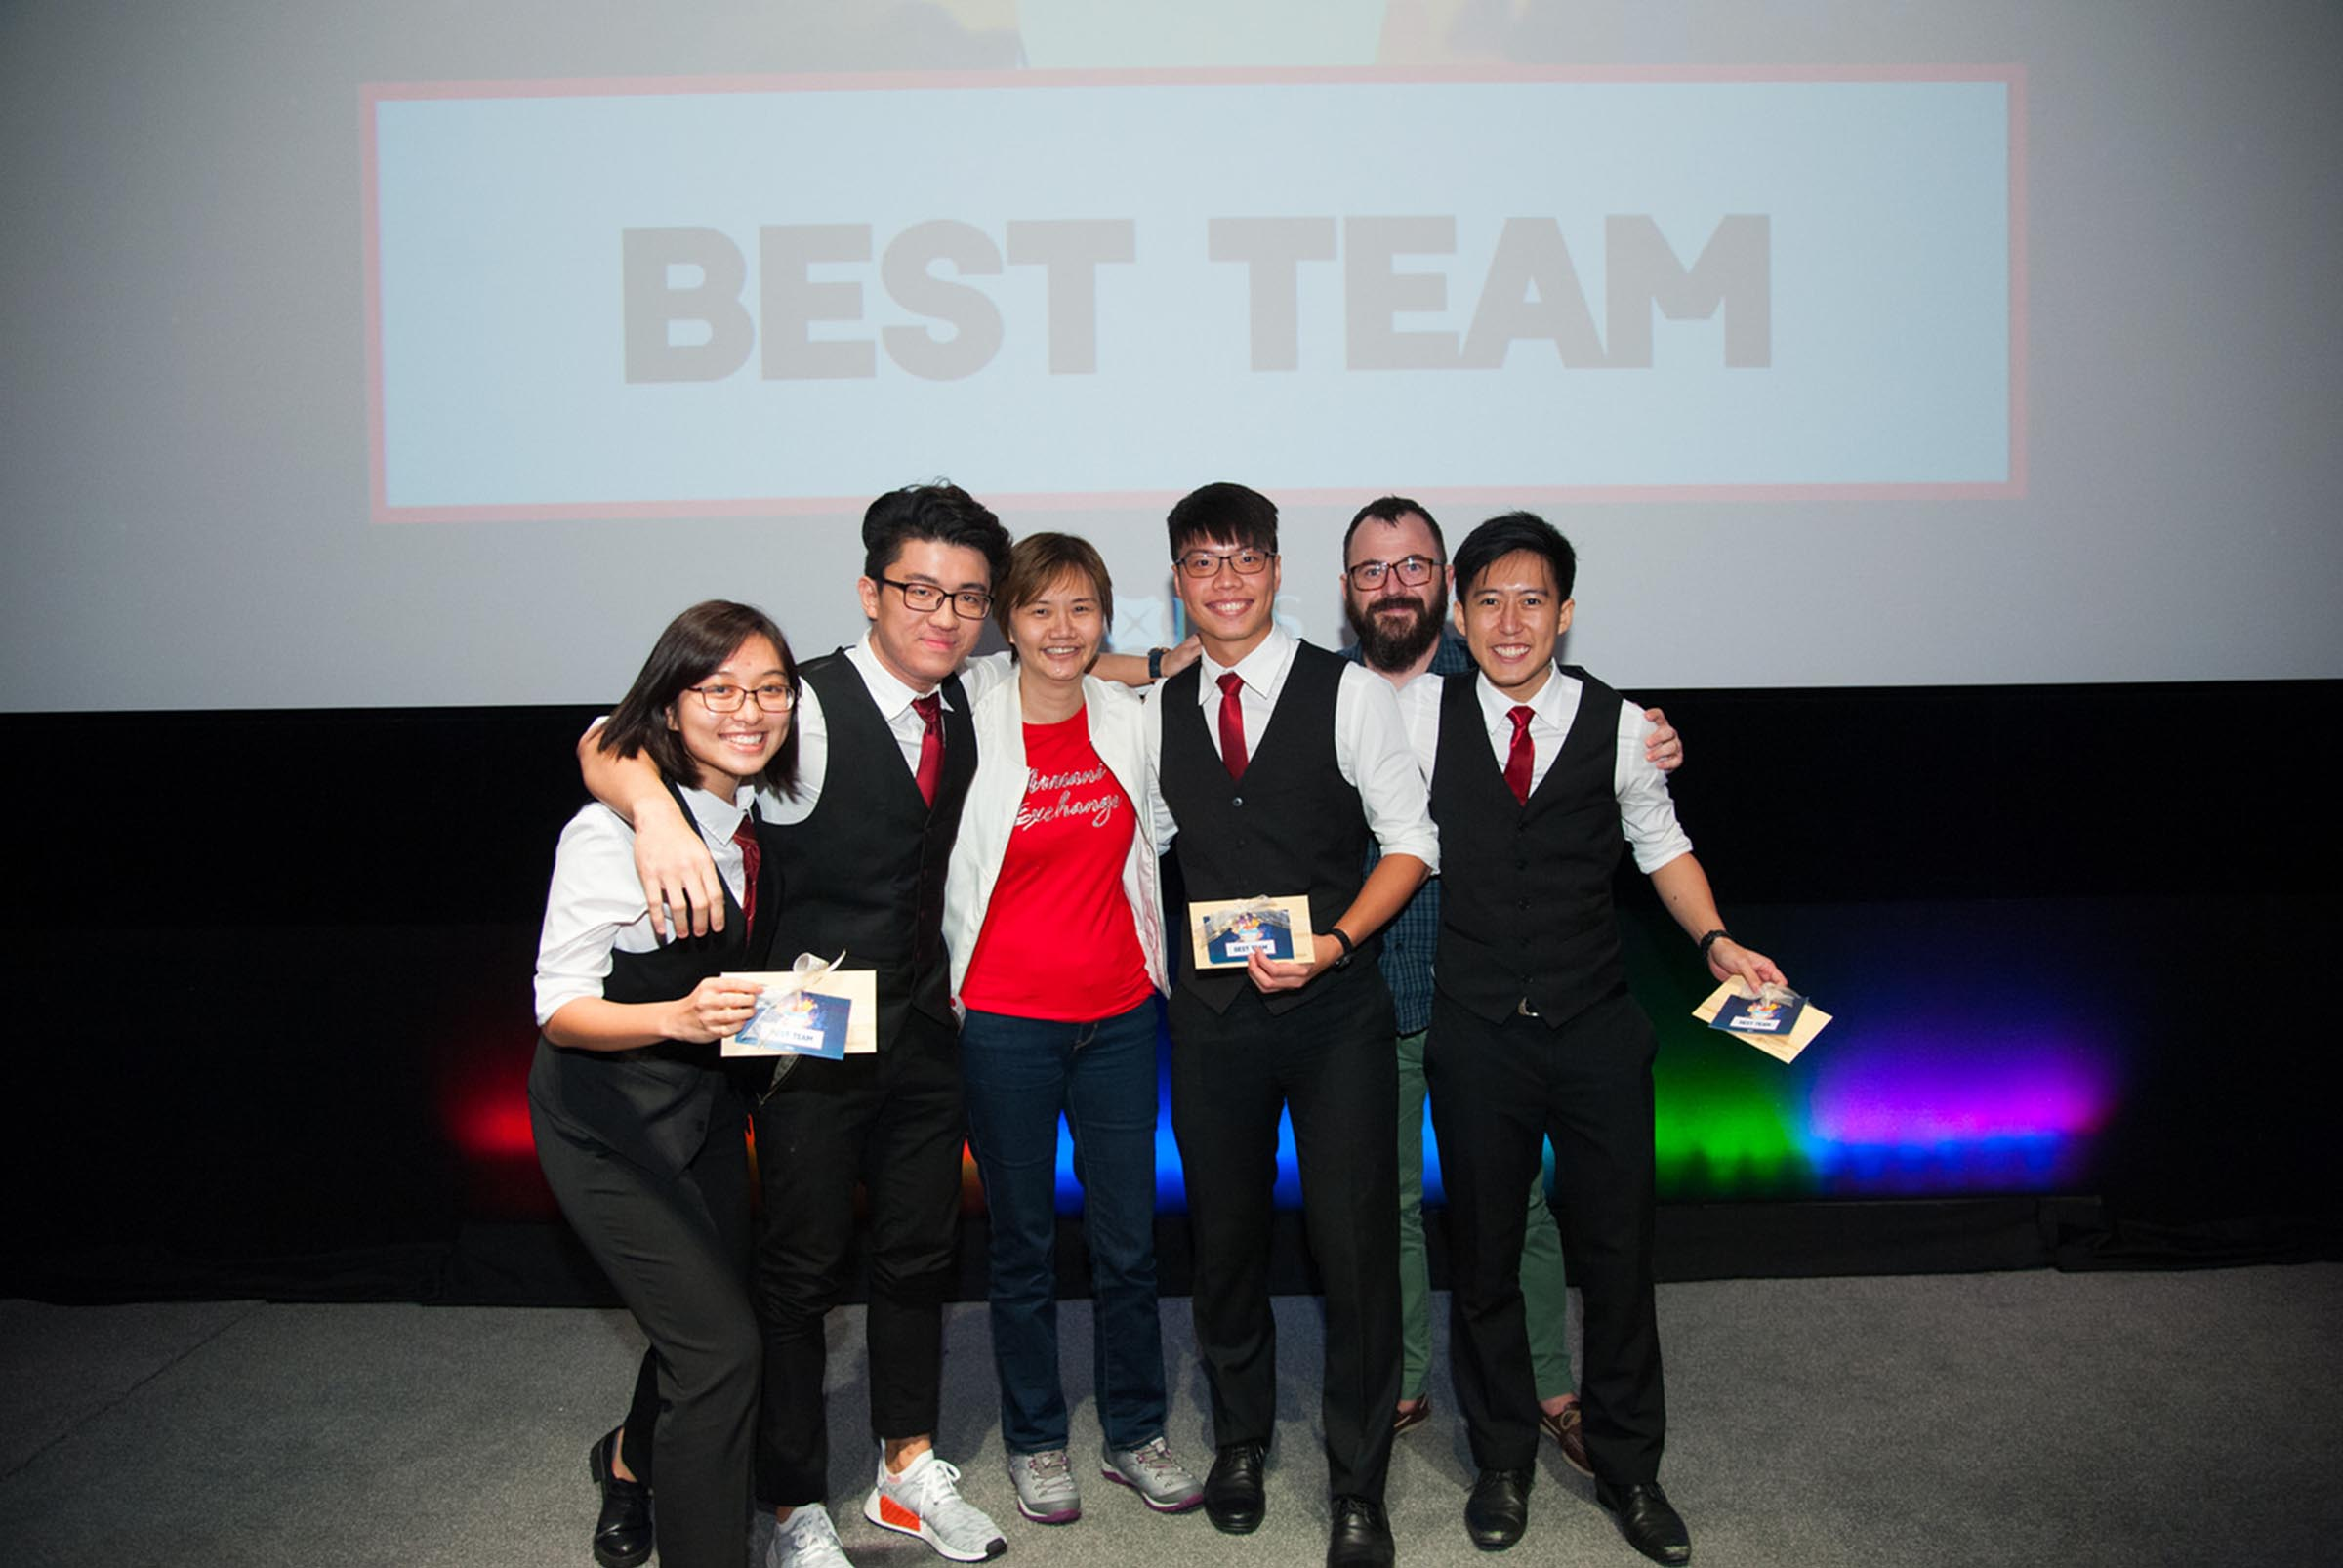 Jonathan Goh (fourth from left) and his team picked up the Best Team prize on Demo Day. Photo: DBS